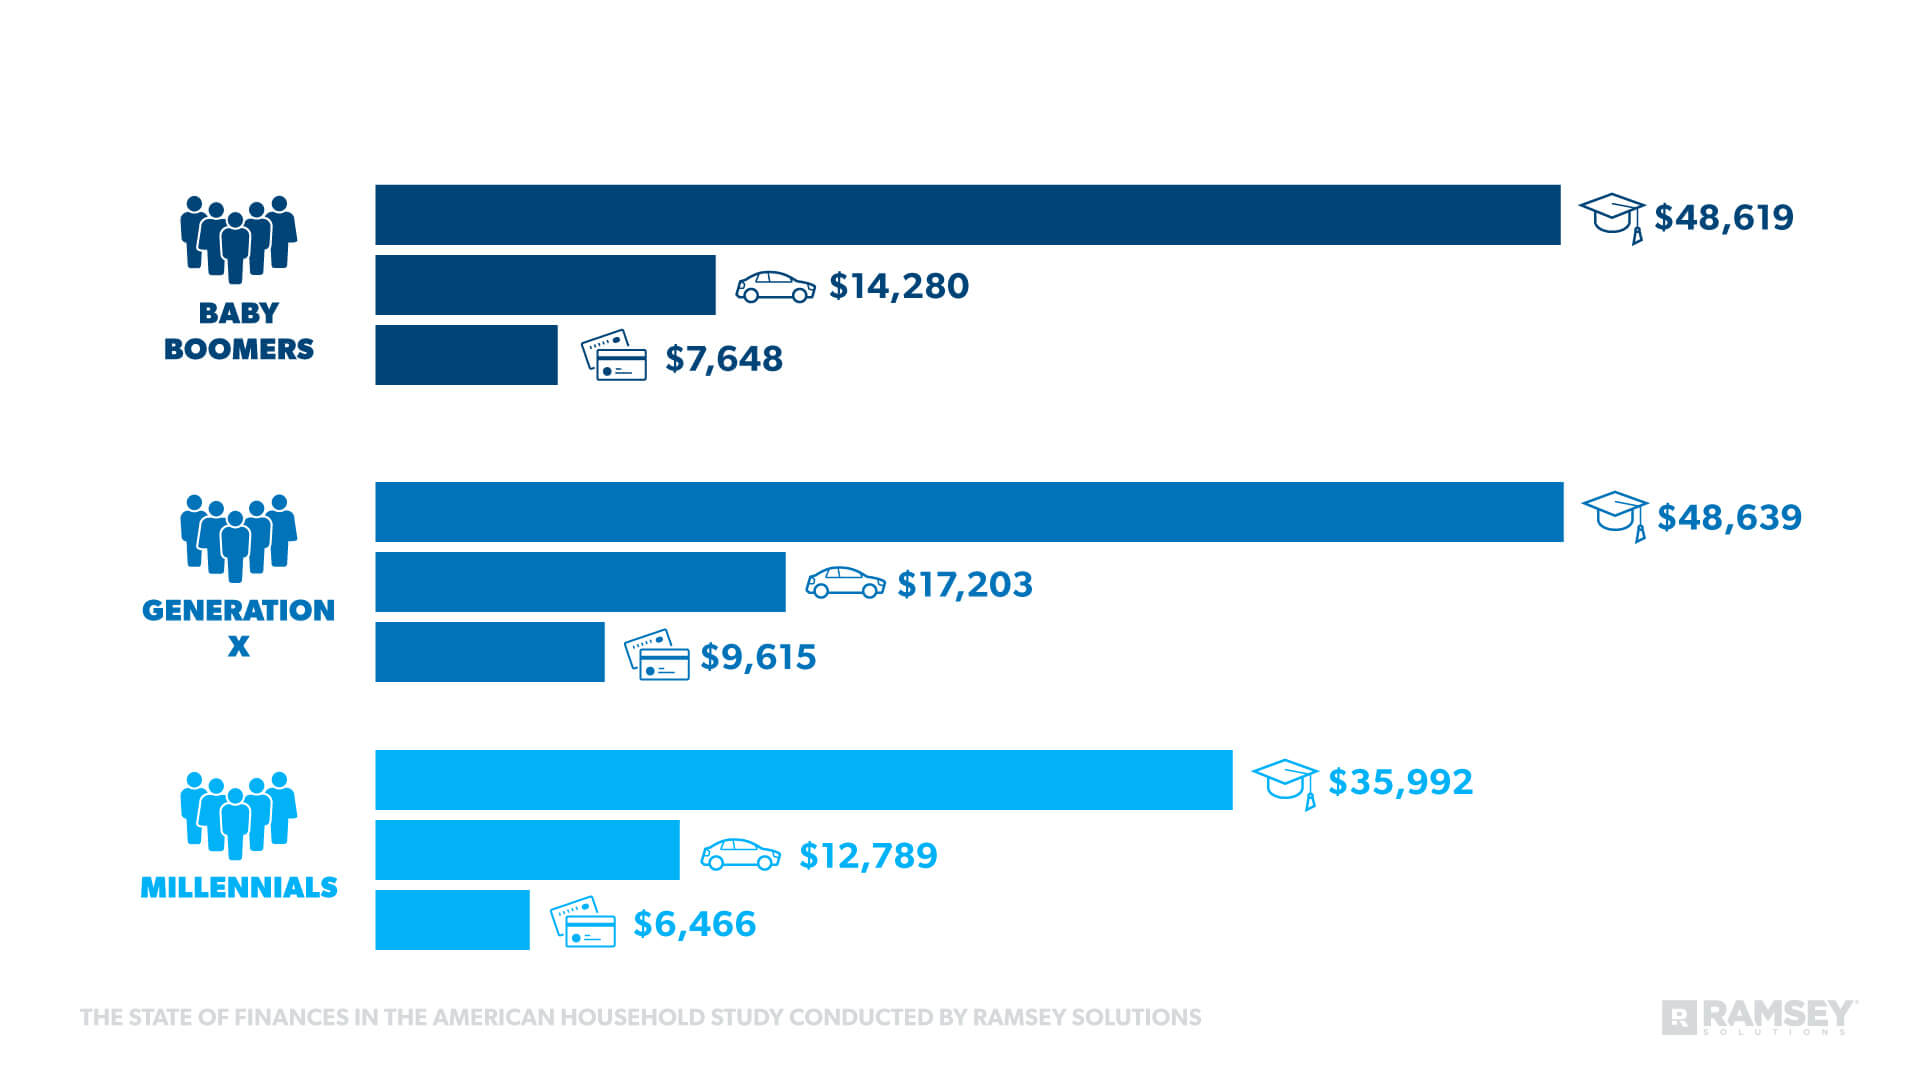 Average Debts Across Generations